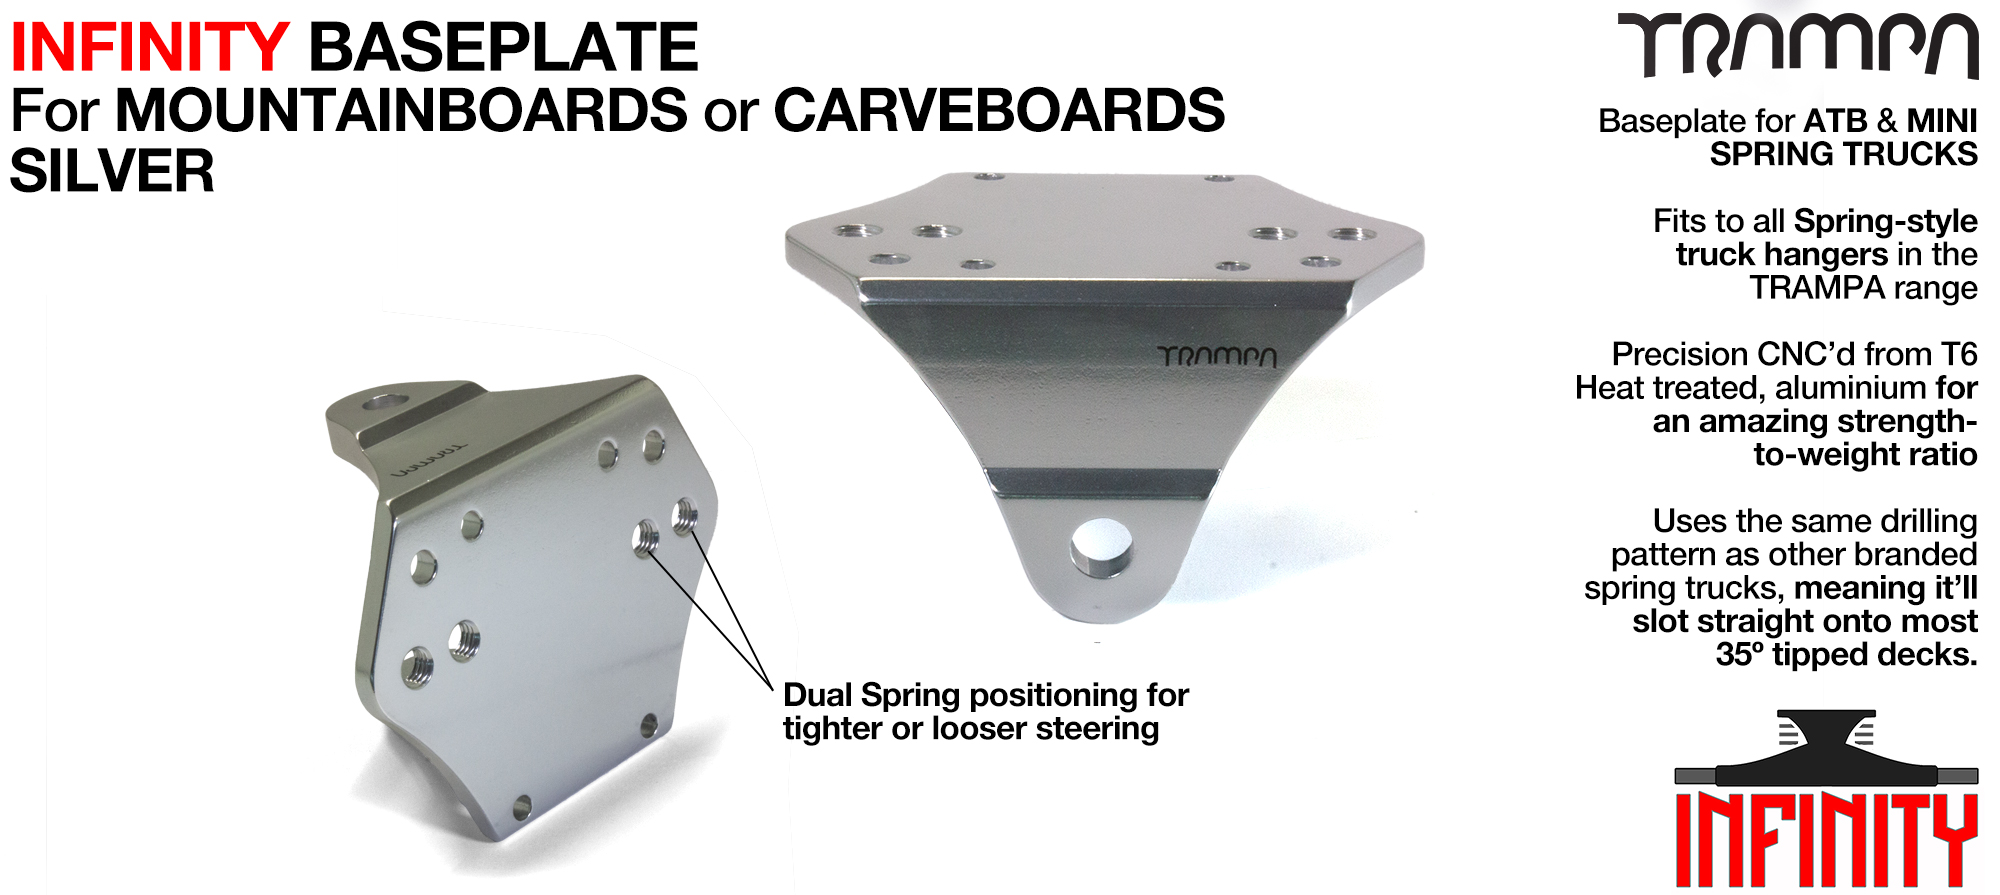 INFINITY Baseplate Silver - Extruded T6 Aluminum Anodised & CNC precision Milled